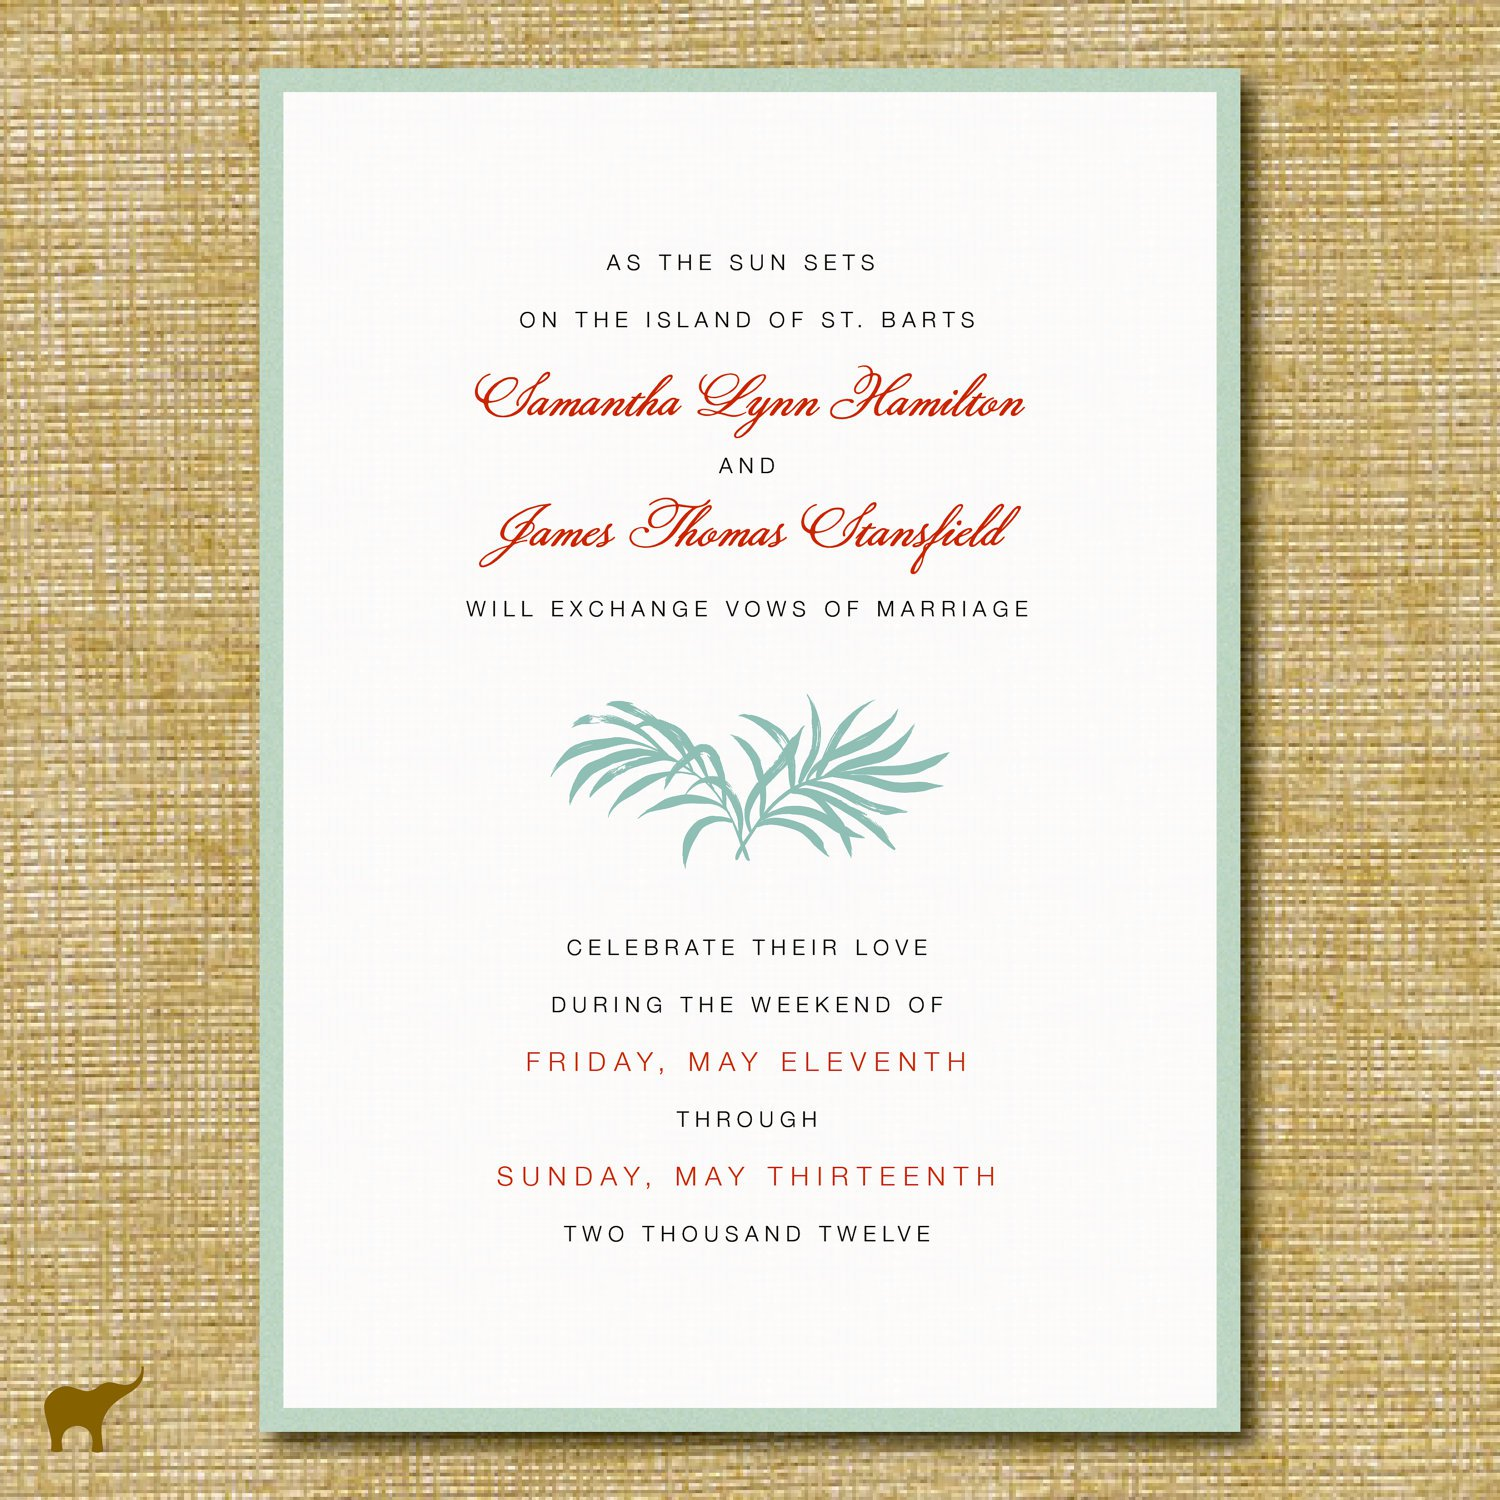 wedding reception only invitation wording examples 1500 x 1500 - Wedding Reception Only Invitations